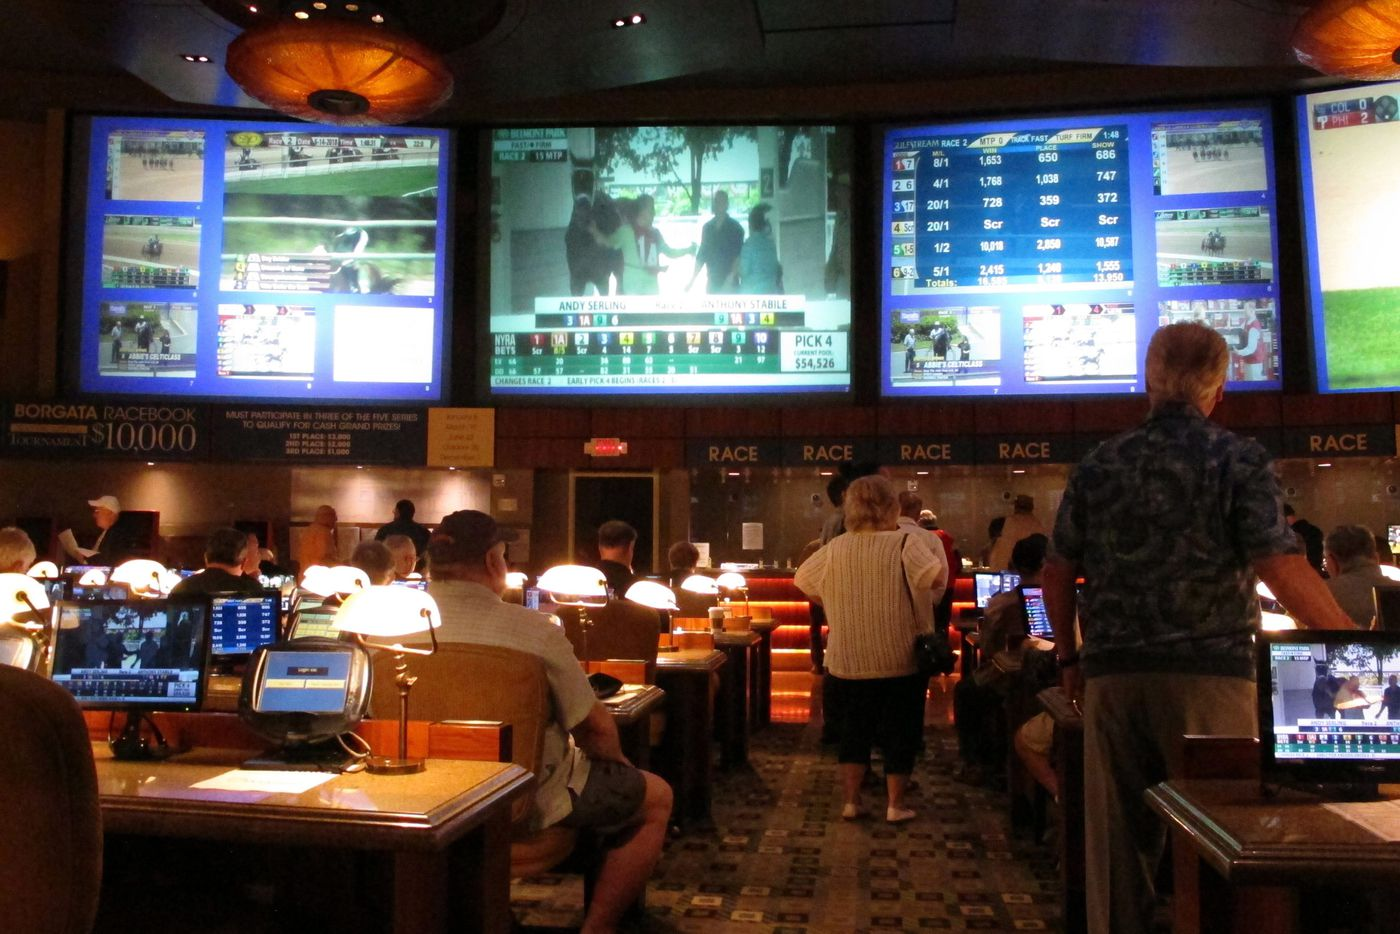 Philly-area investors bet on Vegas sports gambling network being the next CNBC